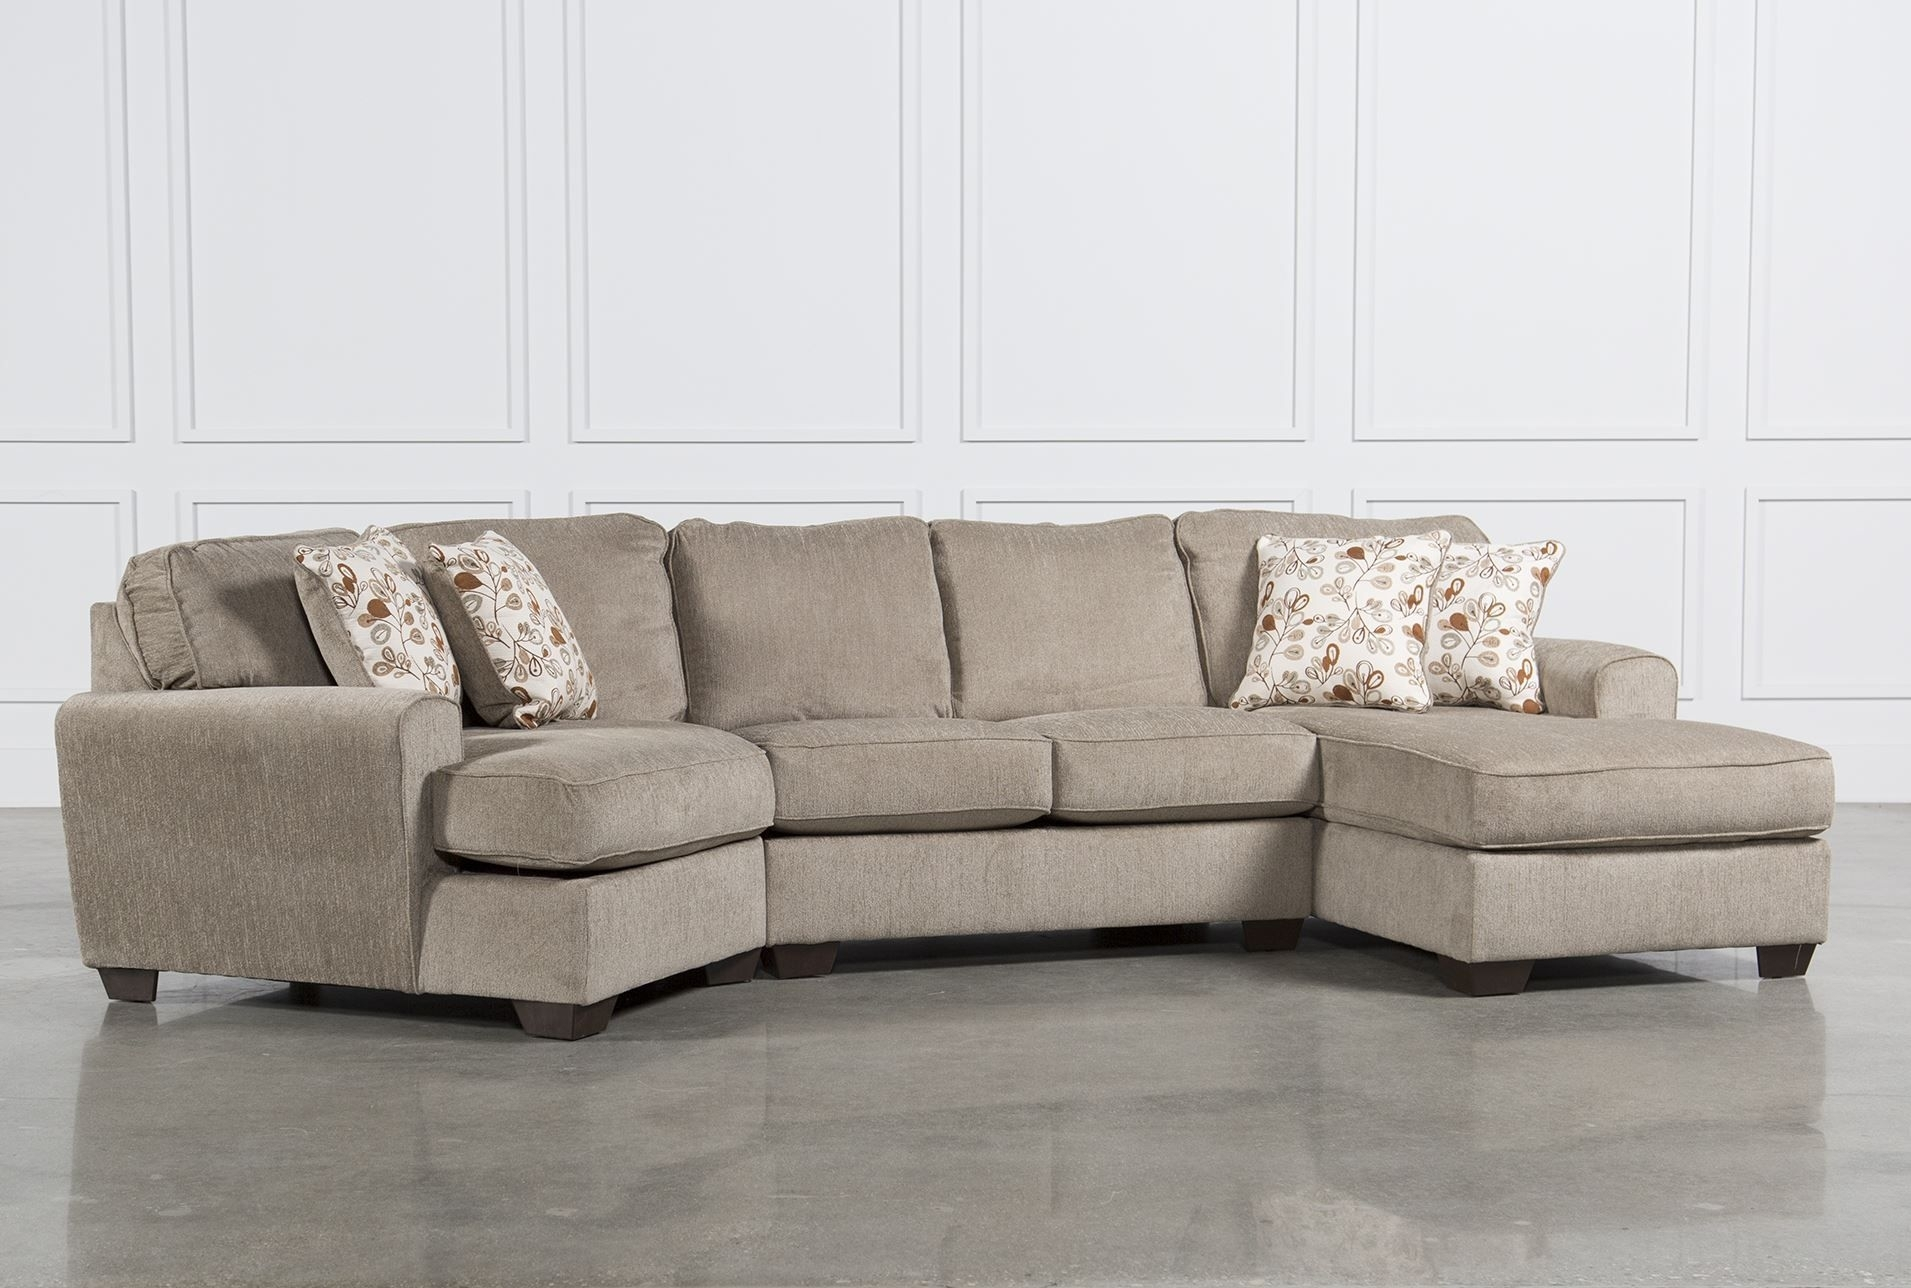 Popular Photo of Sectional Sofas With Cuddler Chaise